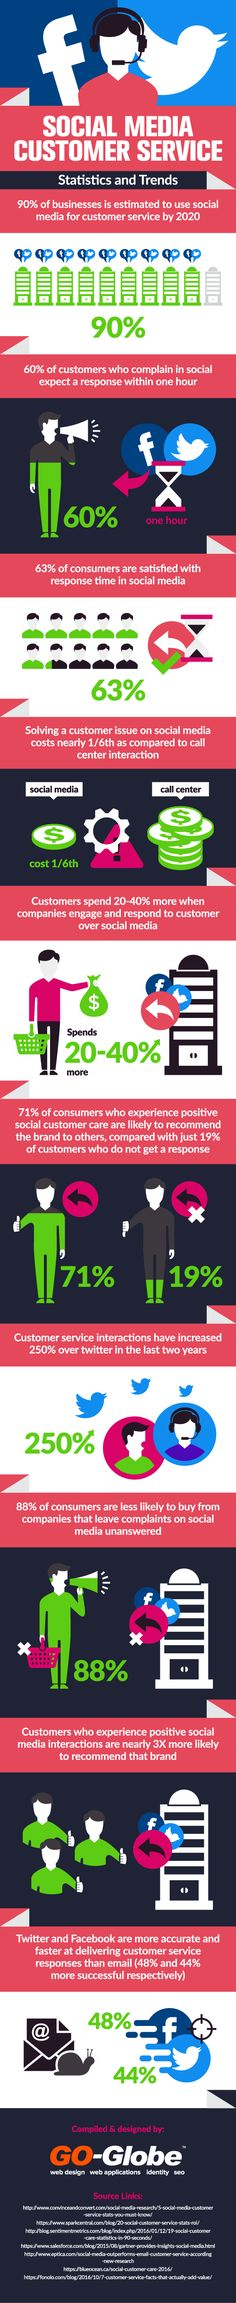 Social Media Customer Service Statistics and Trends [Infographic]